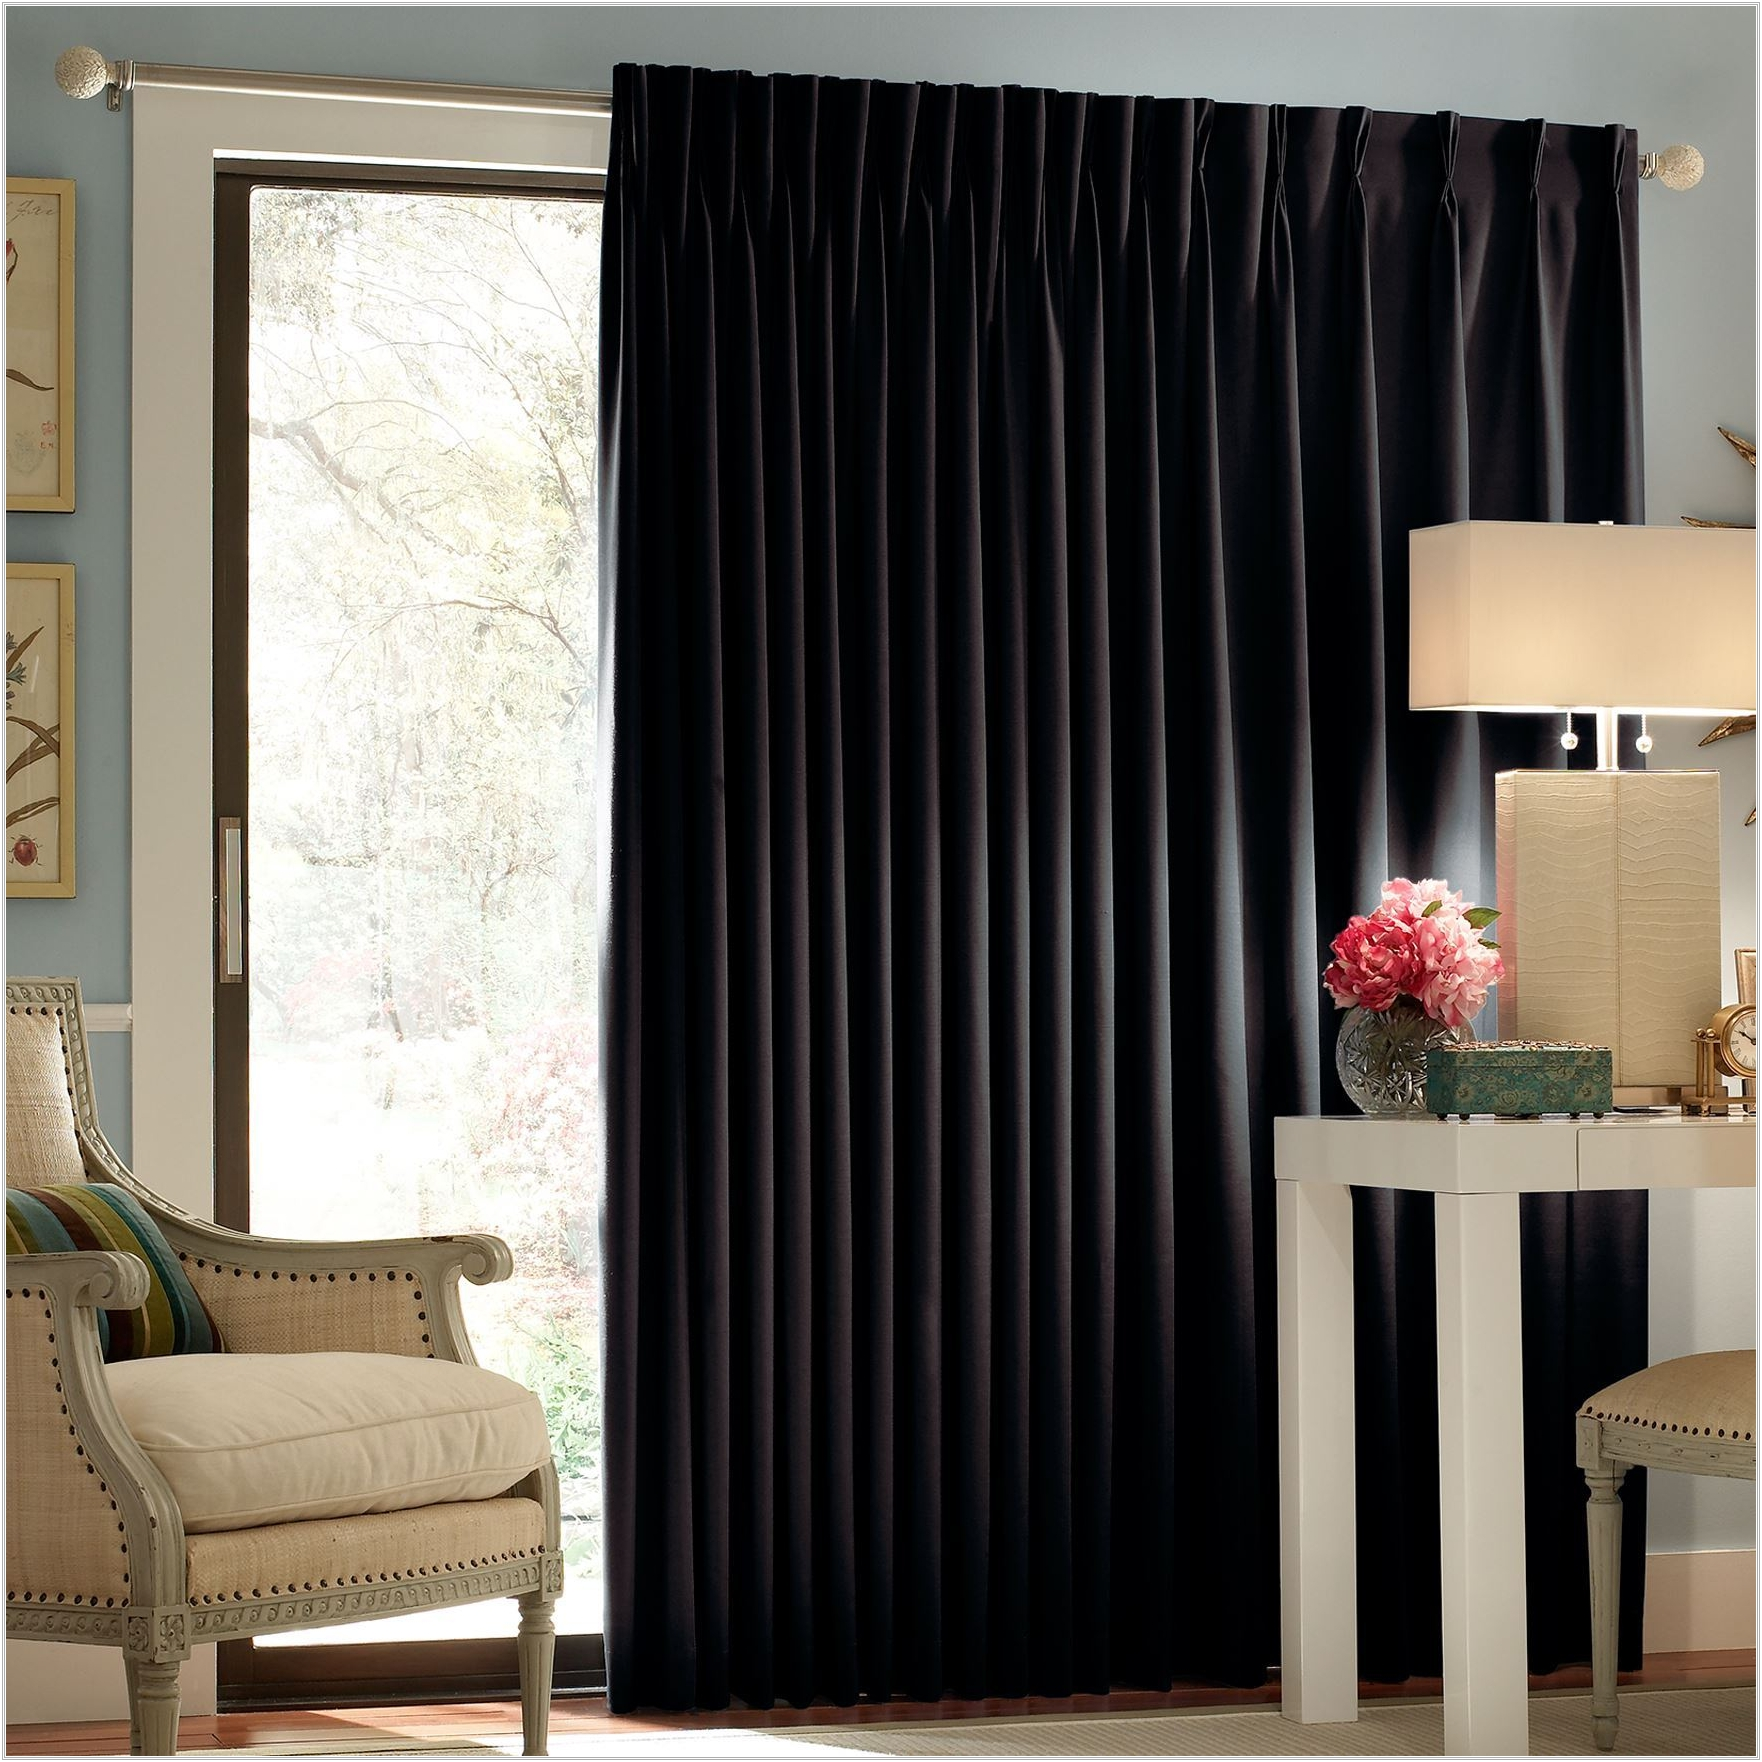 thermal-blackout-patio-door-curtain-curtains-drapes-brylanehome